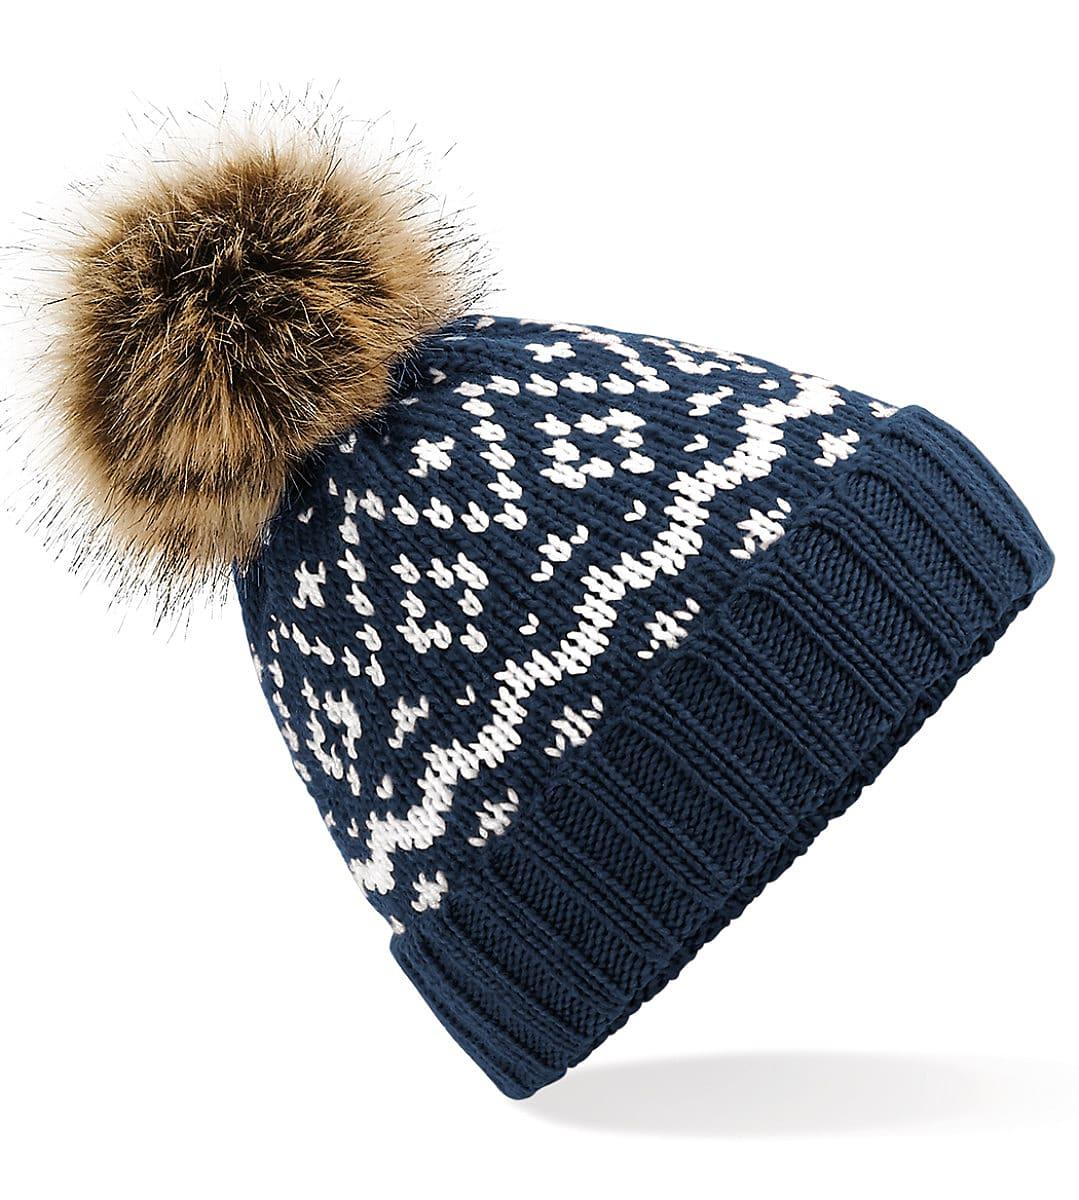 Beechfield Fair Isle Pop Pom Beanie Hat in French Navy / White (Product Code: B411)